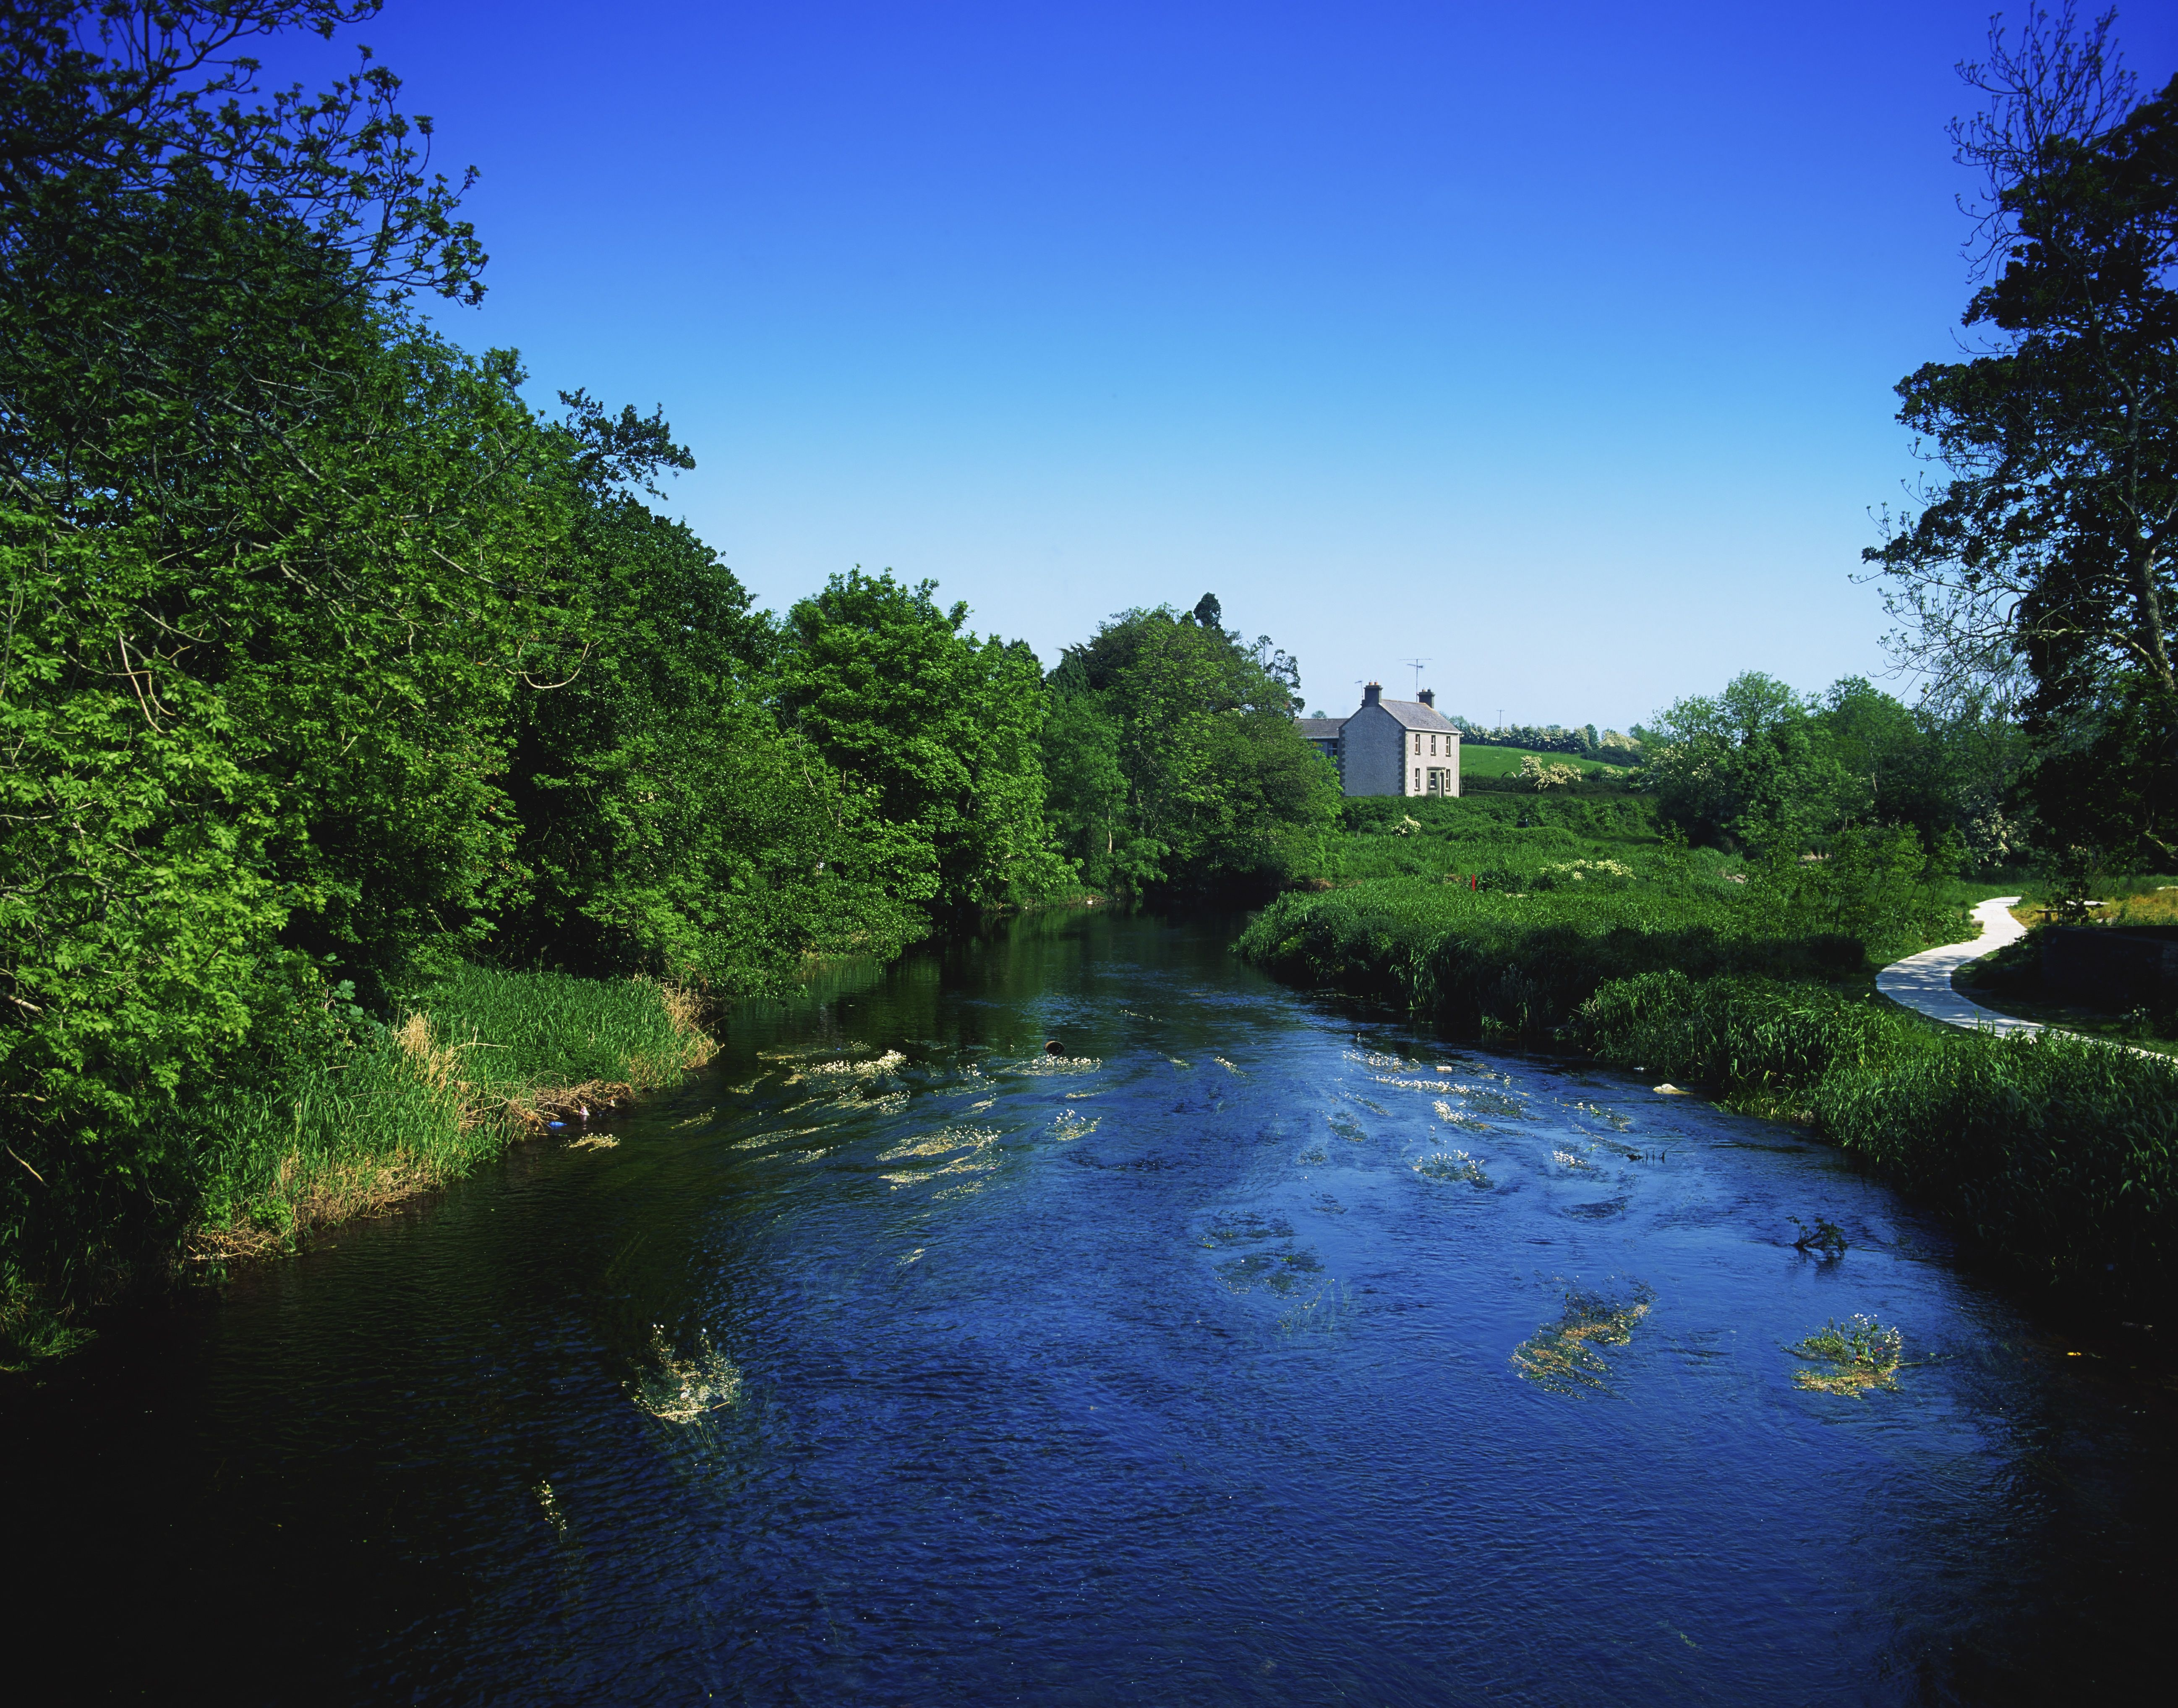 Co Monaghan, The Fane River at Inishkeen, Ireland